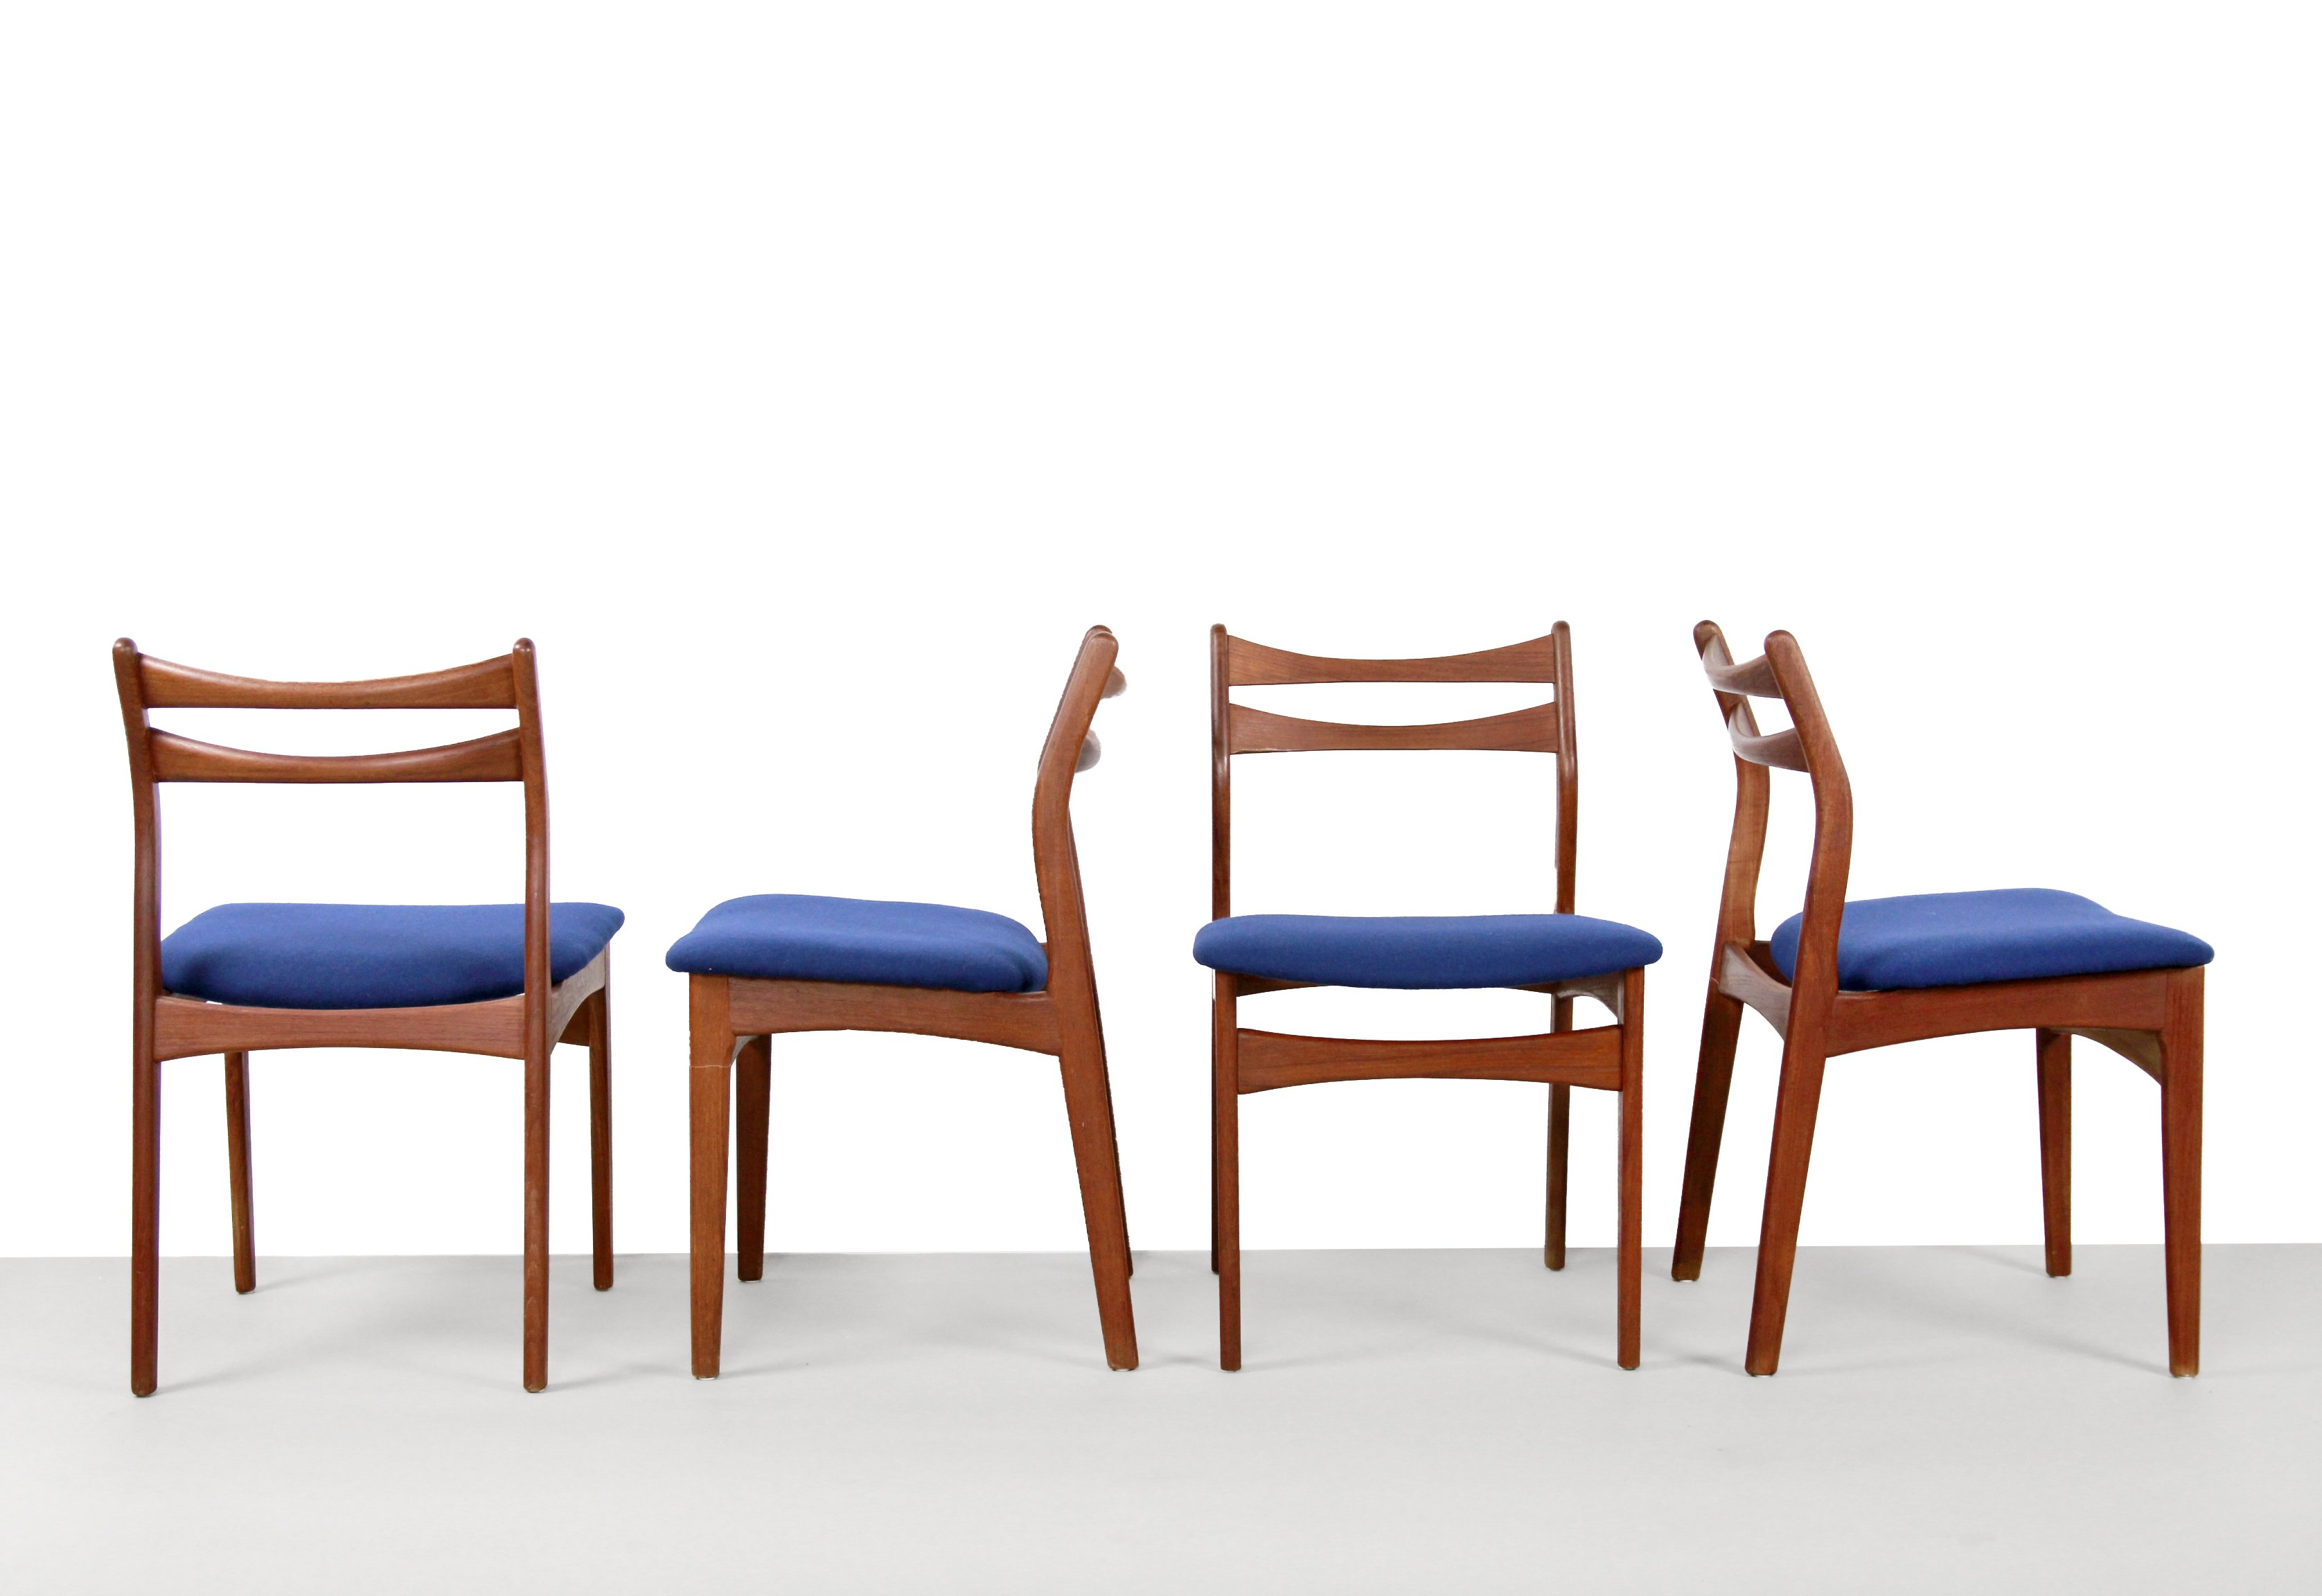 Teak With Blue Wool Fabric Danish Design Chairs By Erik Buck 95946